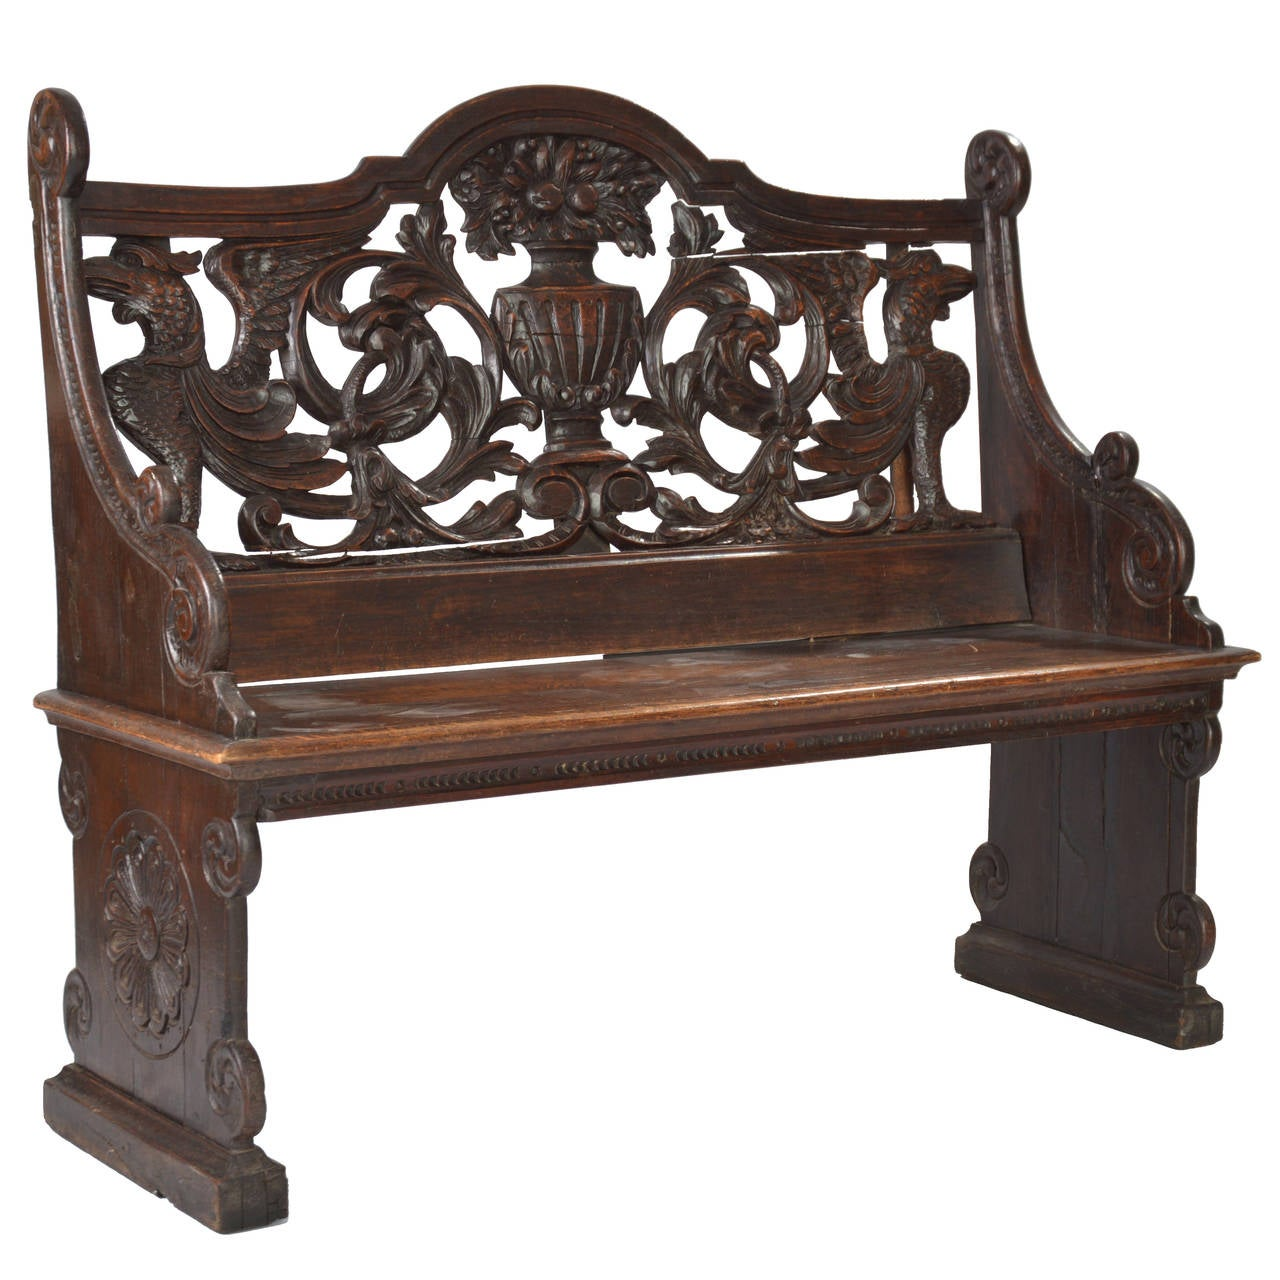 Rare 19th Century Carved Italian Wooden Bench At 1stdibs